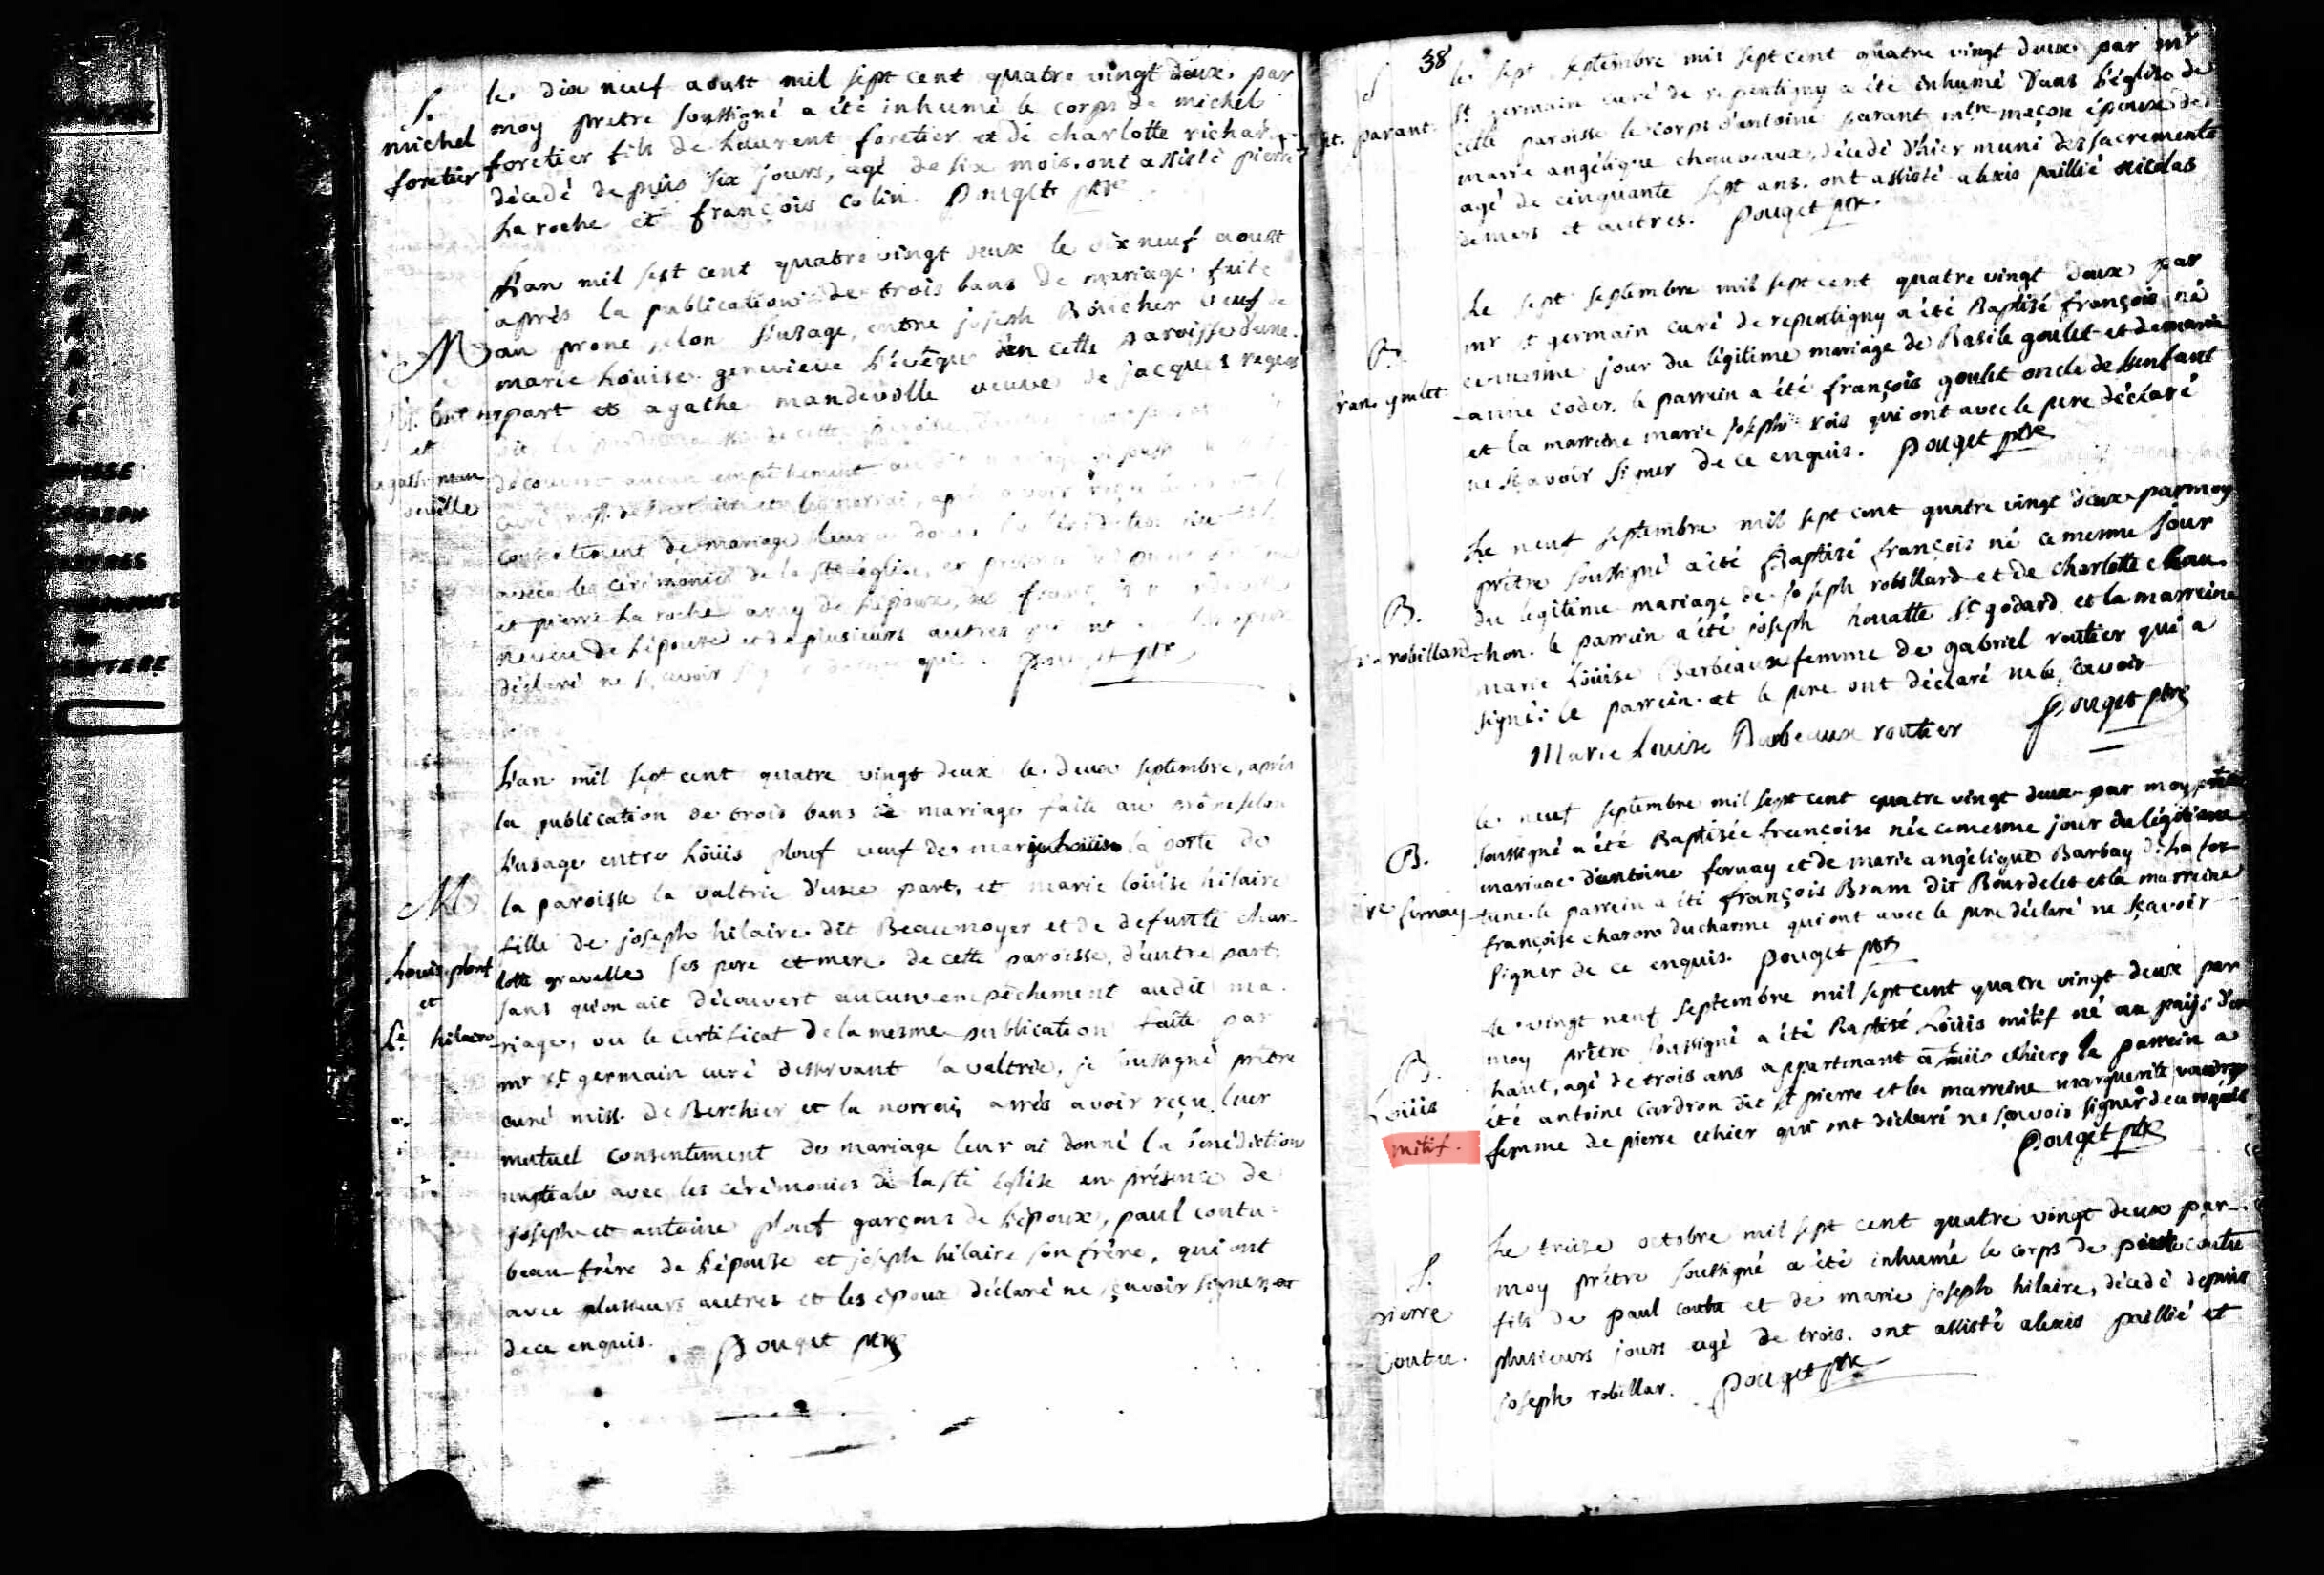 On September 29, one thousand seven hundred and eighty-two by the undersigned priest was baptized LOUIS MITIF born in the Pays d'en Haut, aged three years owned by Louis THIVIERGE the godfather was Antoine CARDRON dit ST-PIERRE and the godmother Marguerite VAUDRY woman of Pierre ETHIER who declared not to know signed of this required - Pouget ptre